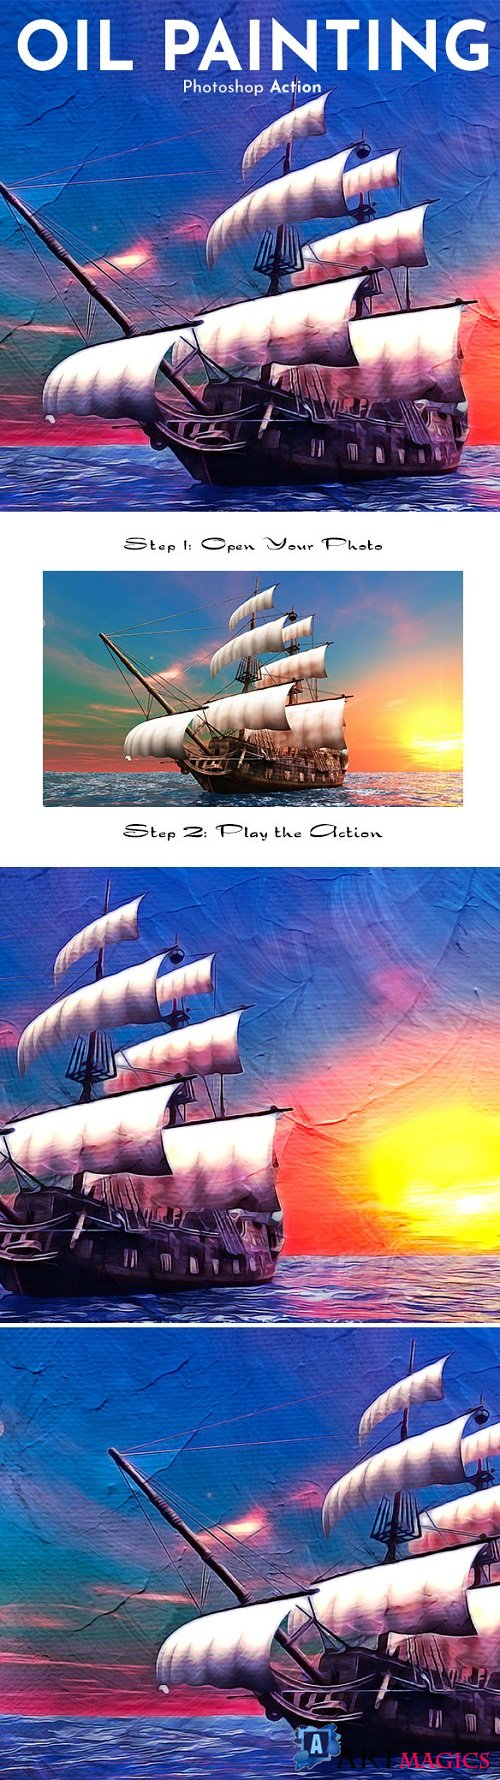 Oil Painting Photoshop Action 20962486